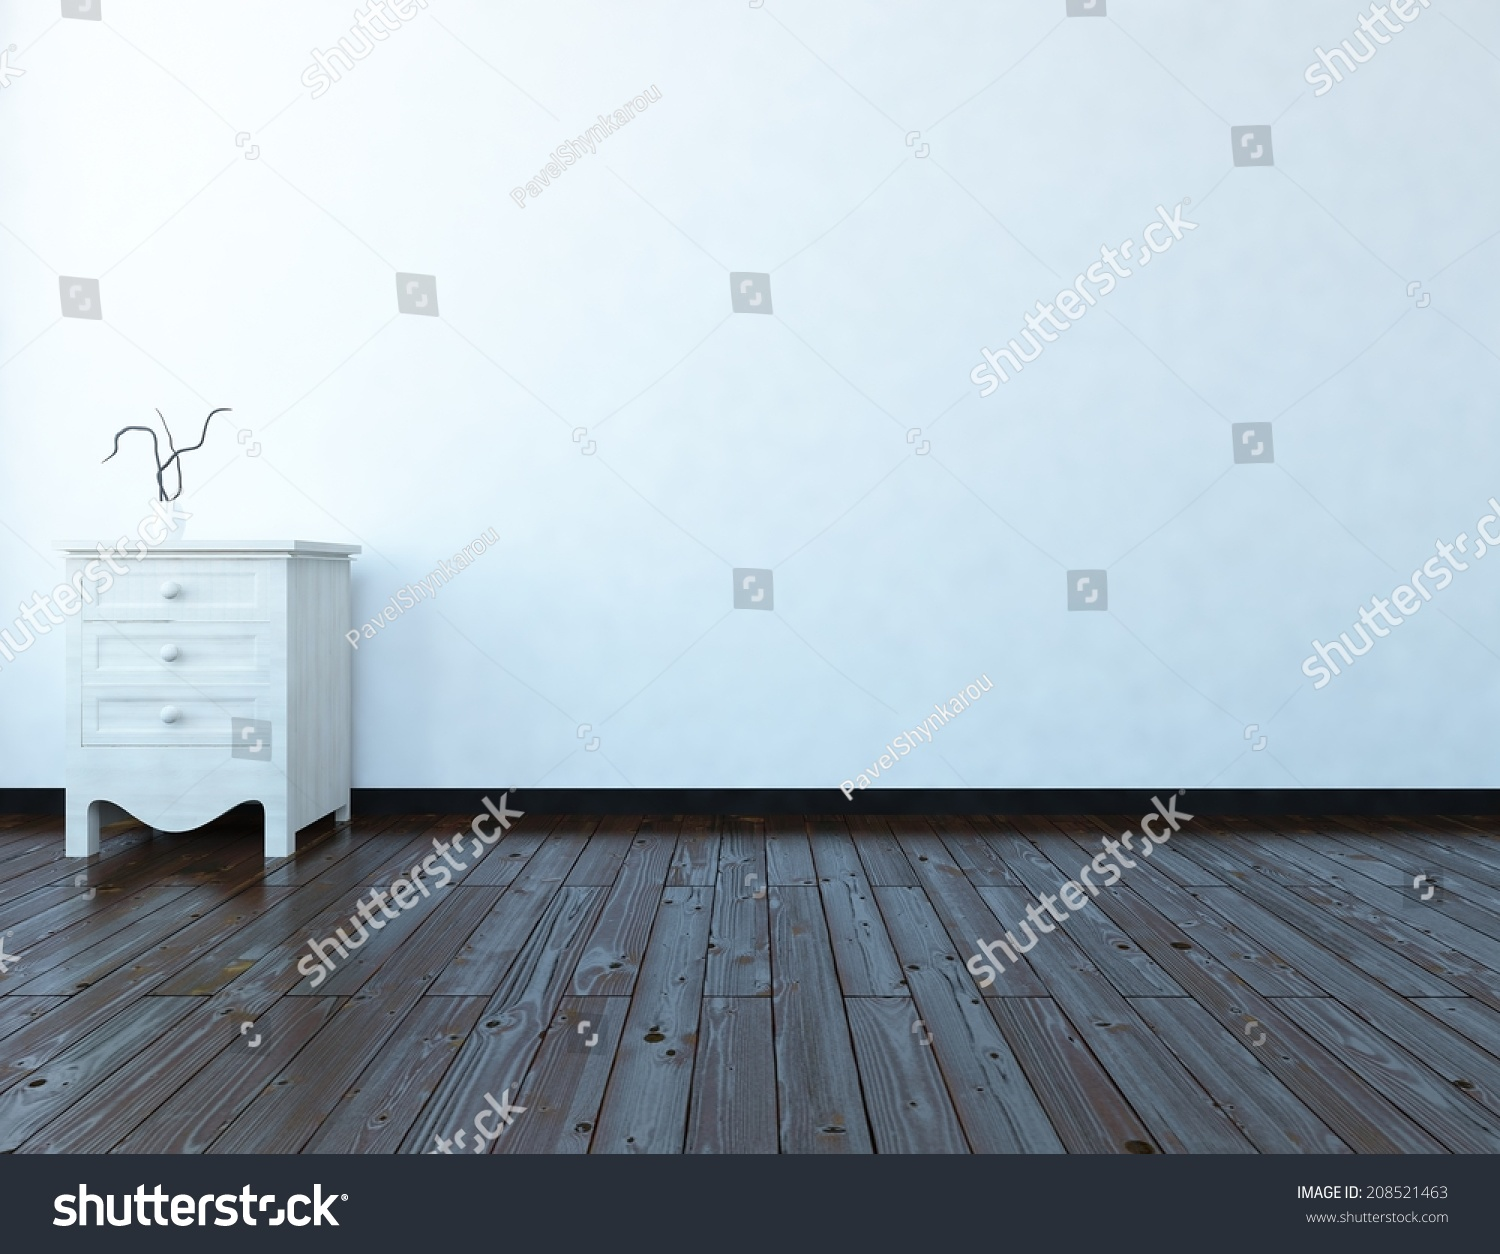 white empty interior with a bedside table